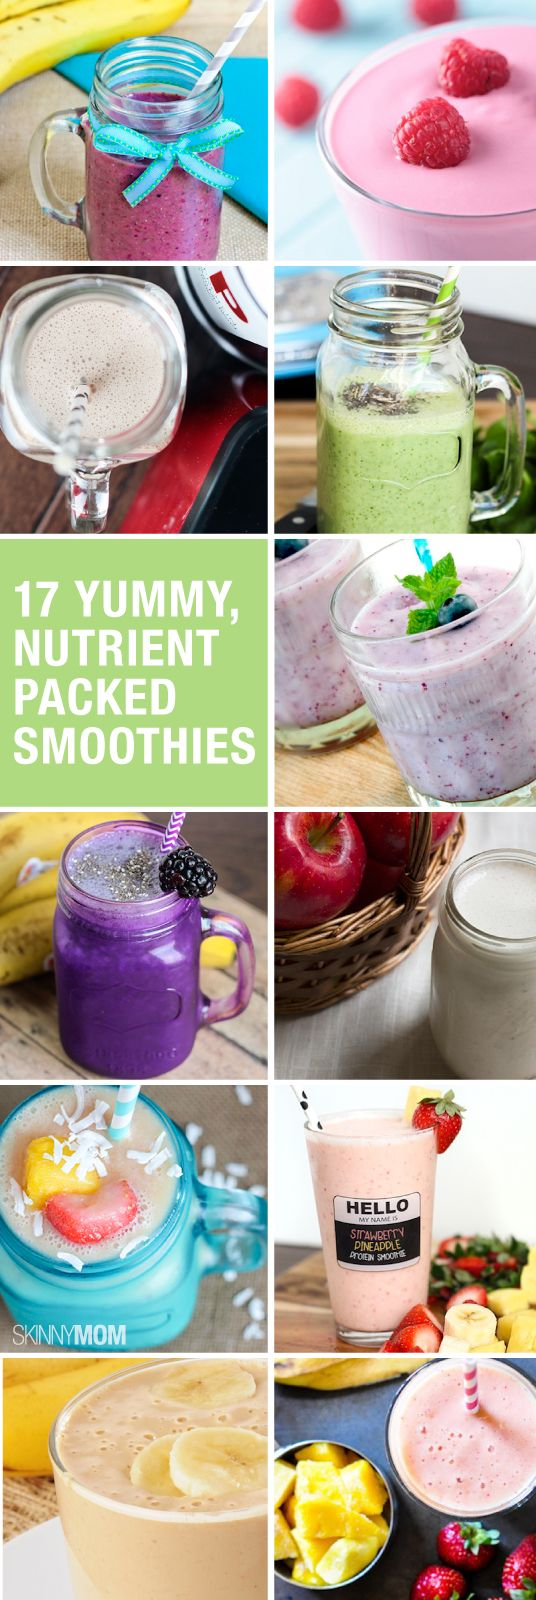 You have to try out these smoothies! Not only are they packed with nutrients and healthy for you, but theyre perfect to whip up on a busy morning!